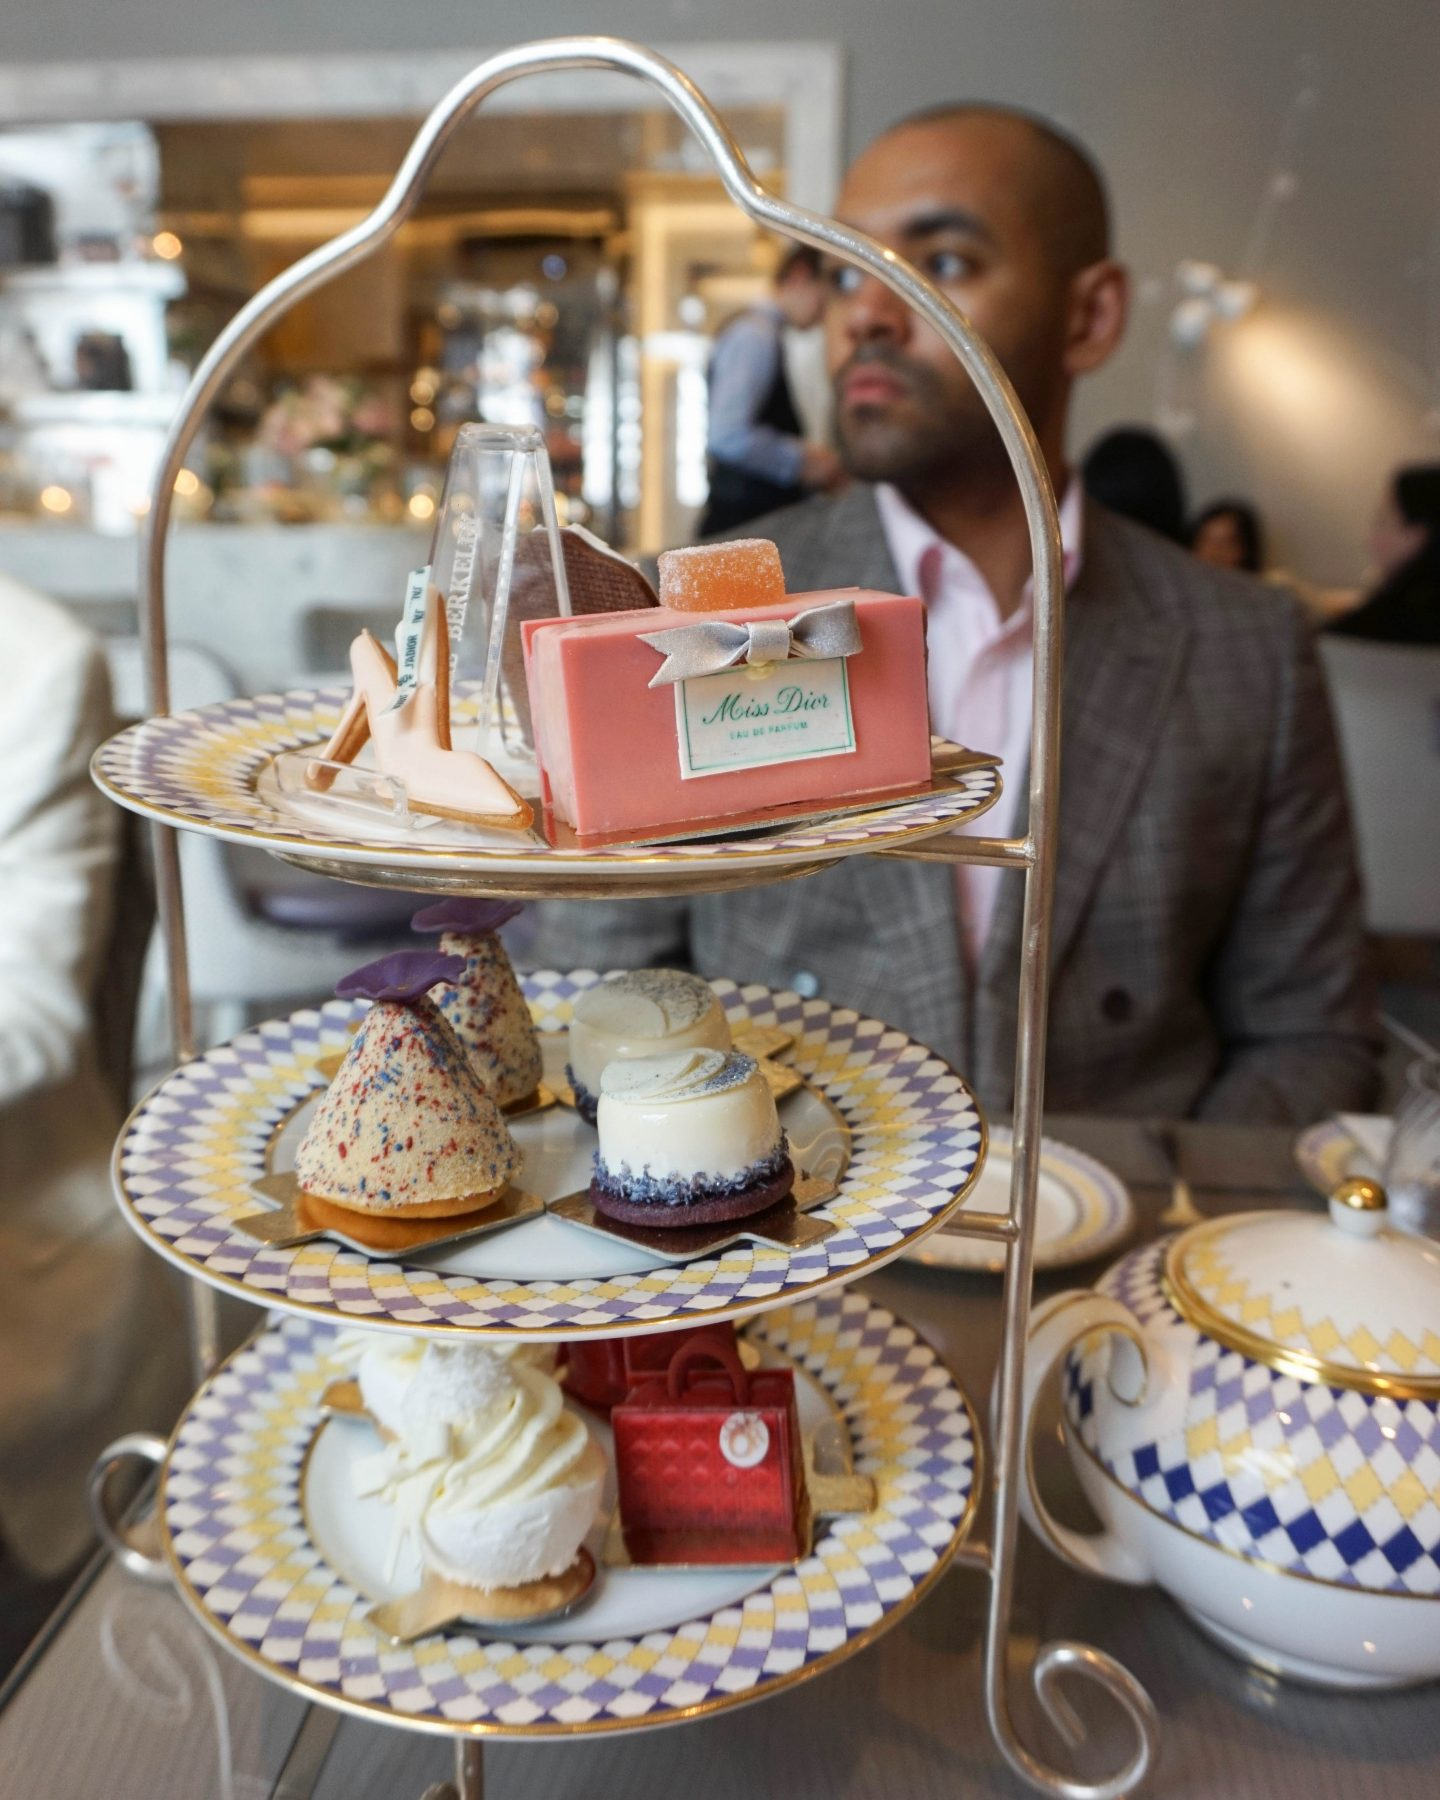 The Berkeley Dior Prêt-à-Portea afternoon tea